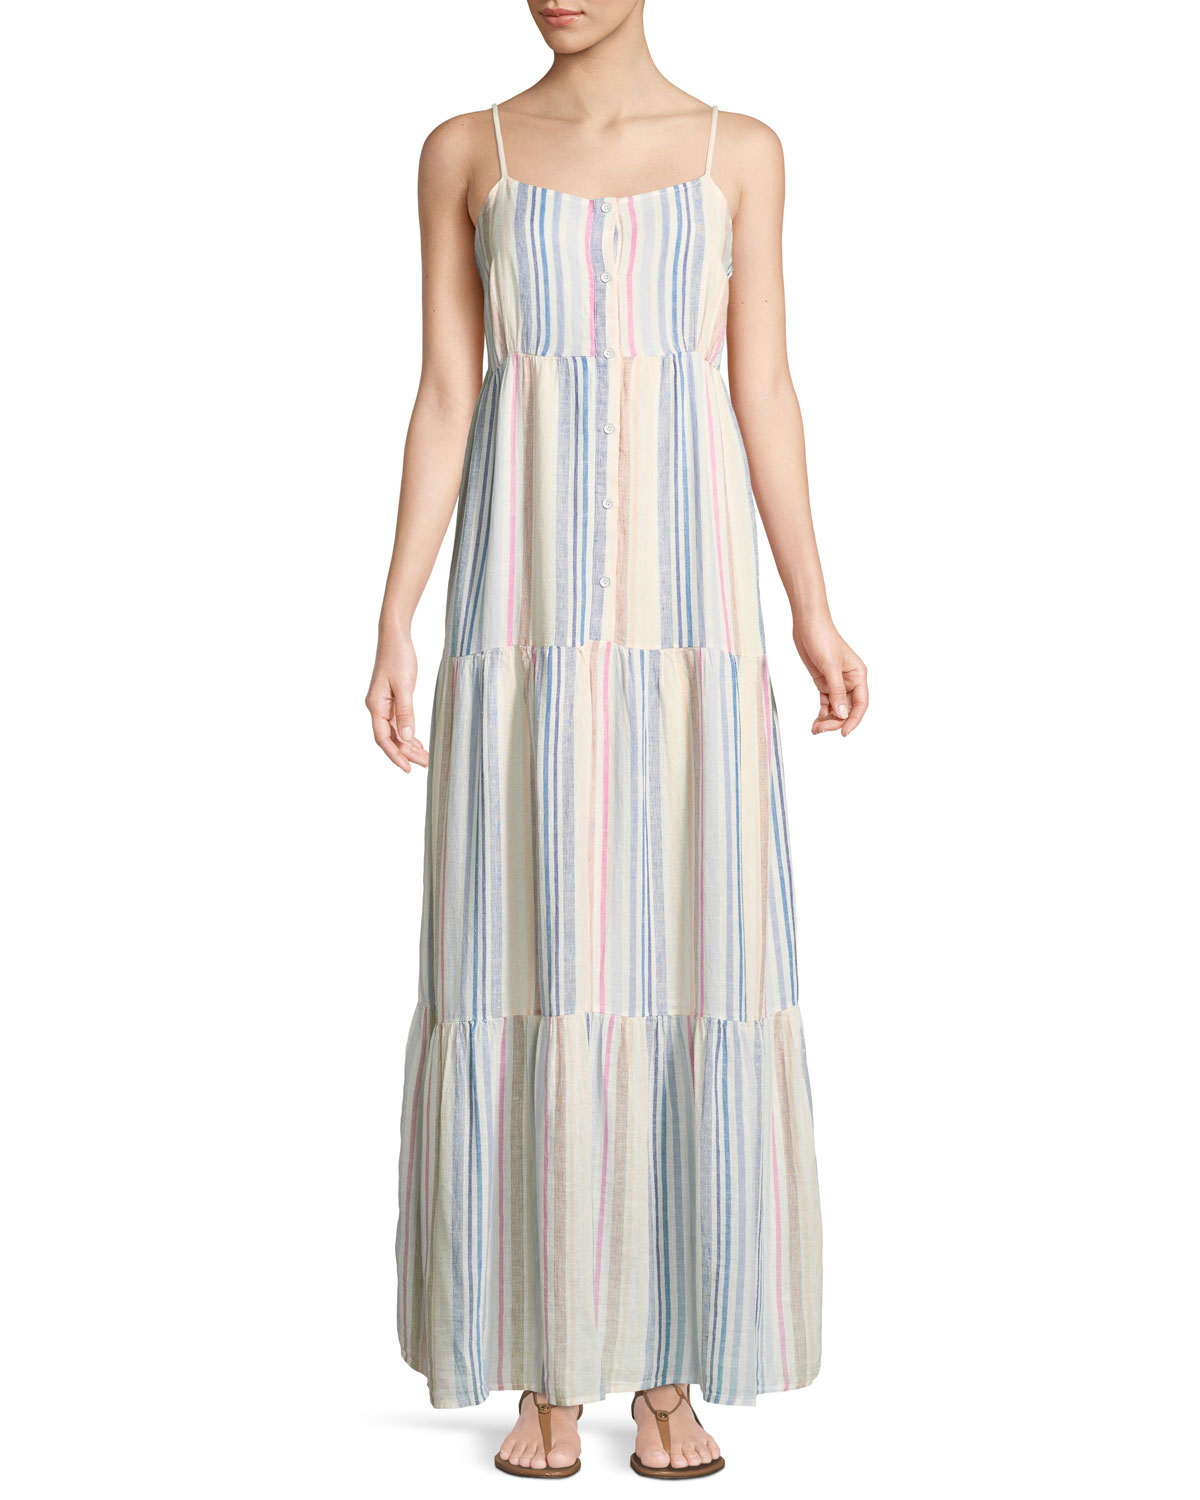 51b06e975f5 Splendid Arco Iris Striped Shirting Tiered Maxi Dress